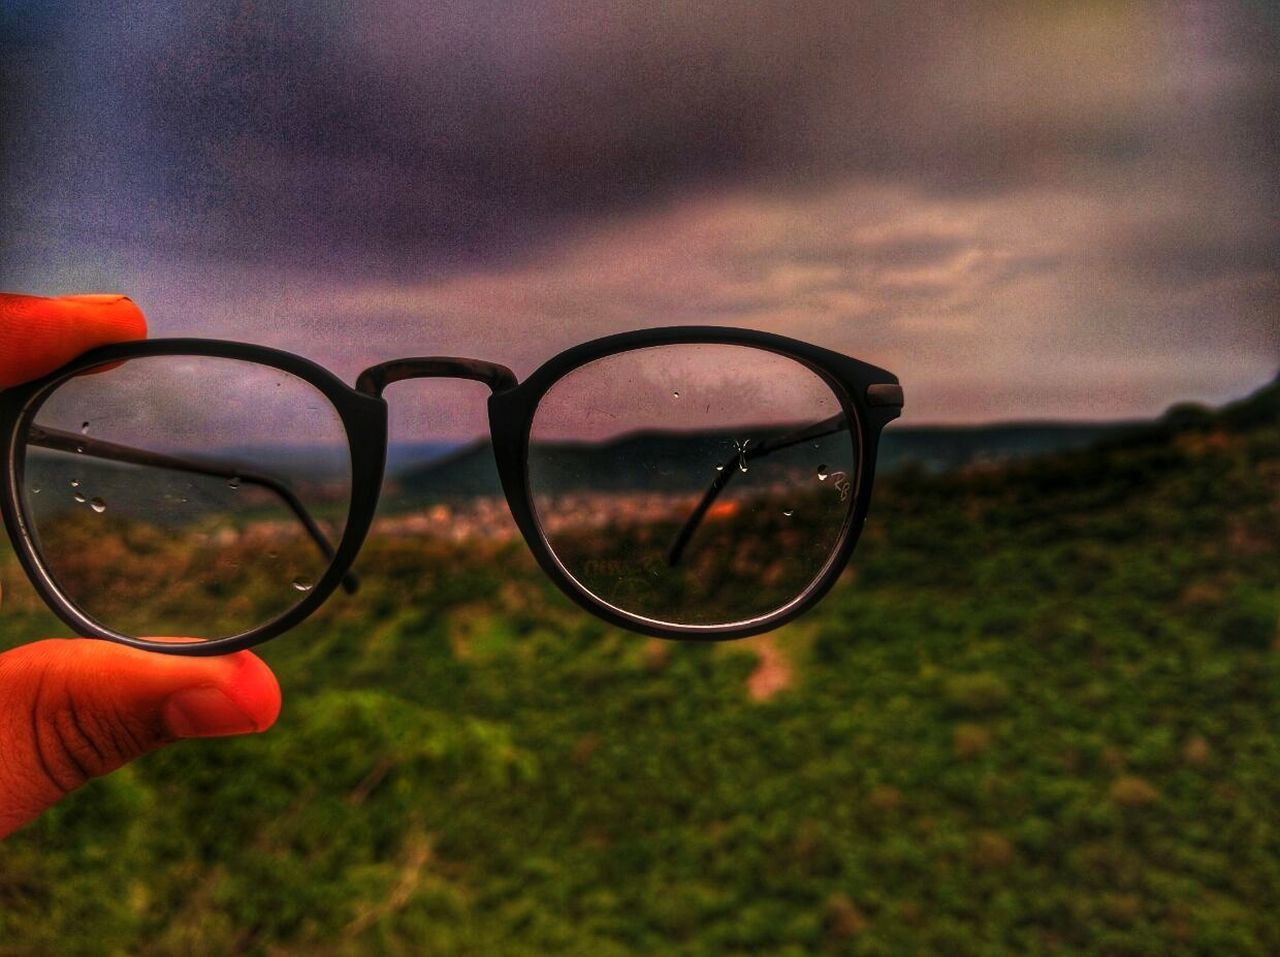 Sunglasses Eyeglasses  Eyewear Outdoors Close-up Sky Lens - Eye Eyesight Day Human Hand OneAndOnly Travel Destinations Hidden Gems  EpicFeeling Adventure Rare Winter Cultures Landofmagic Finding New Frontiers City Beauty Magichappenseveryday Biketour WinterWandering Adapted To The City Uniqueness Miles Away